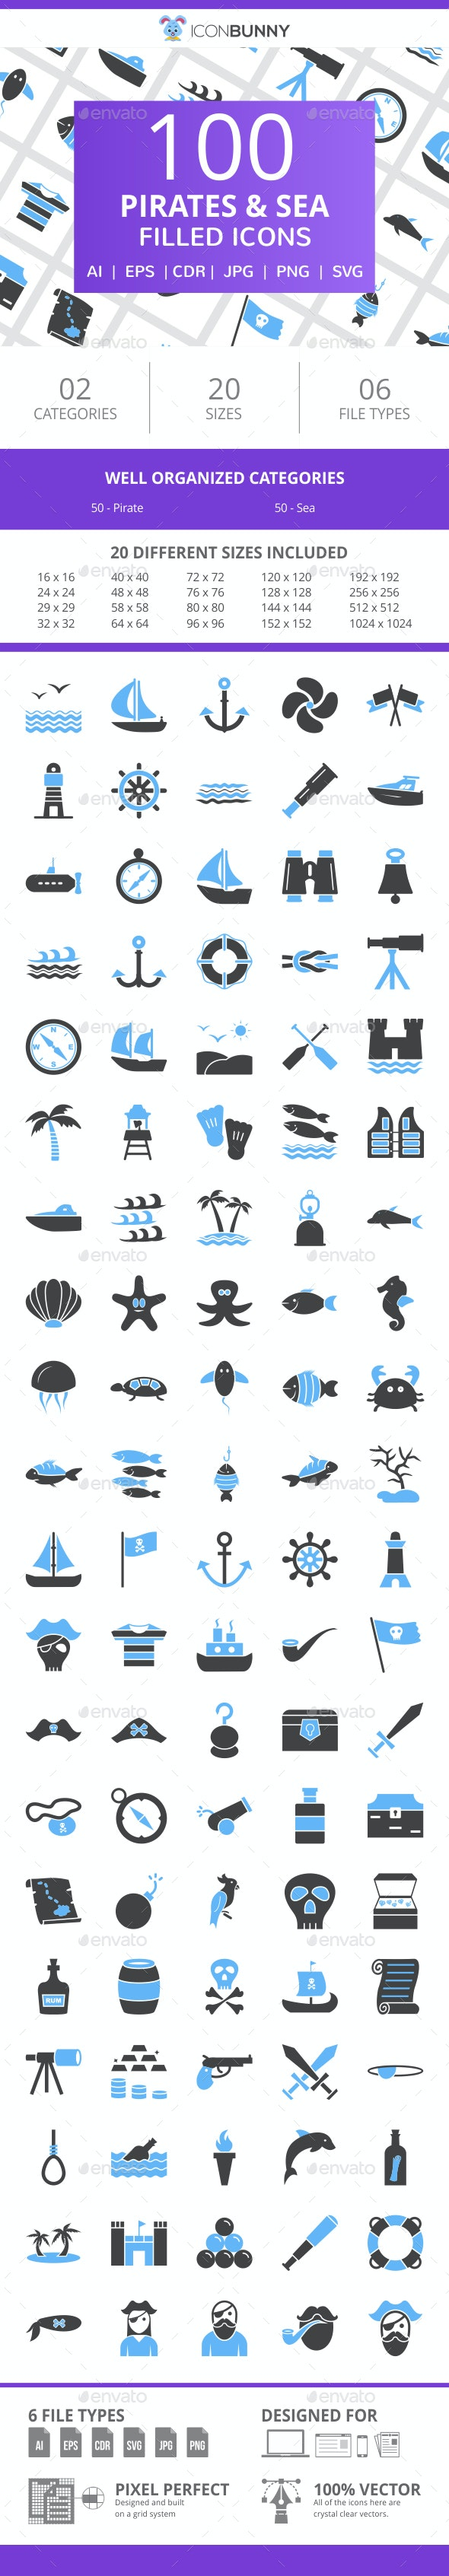 100 Pirate & Sea Filled Blue & Black Icons - Icons